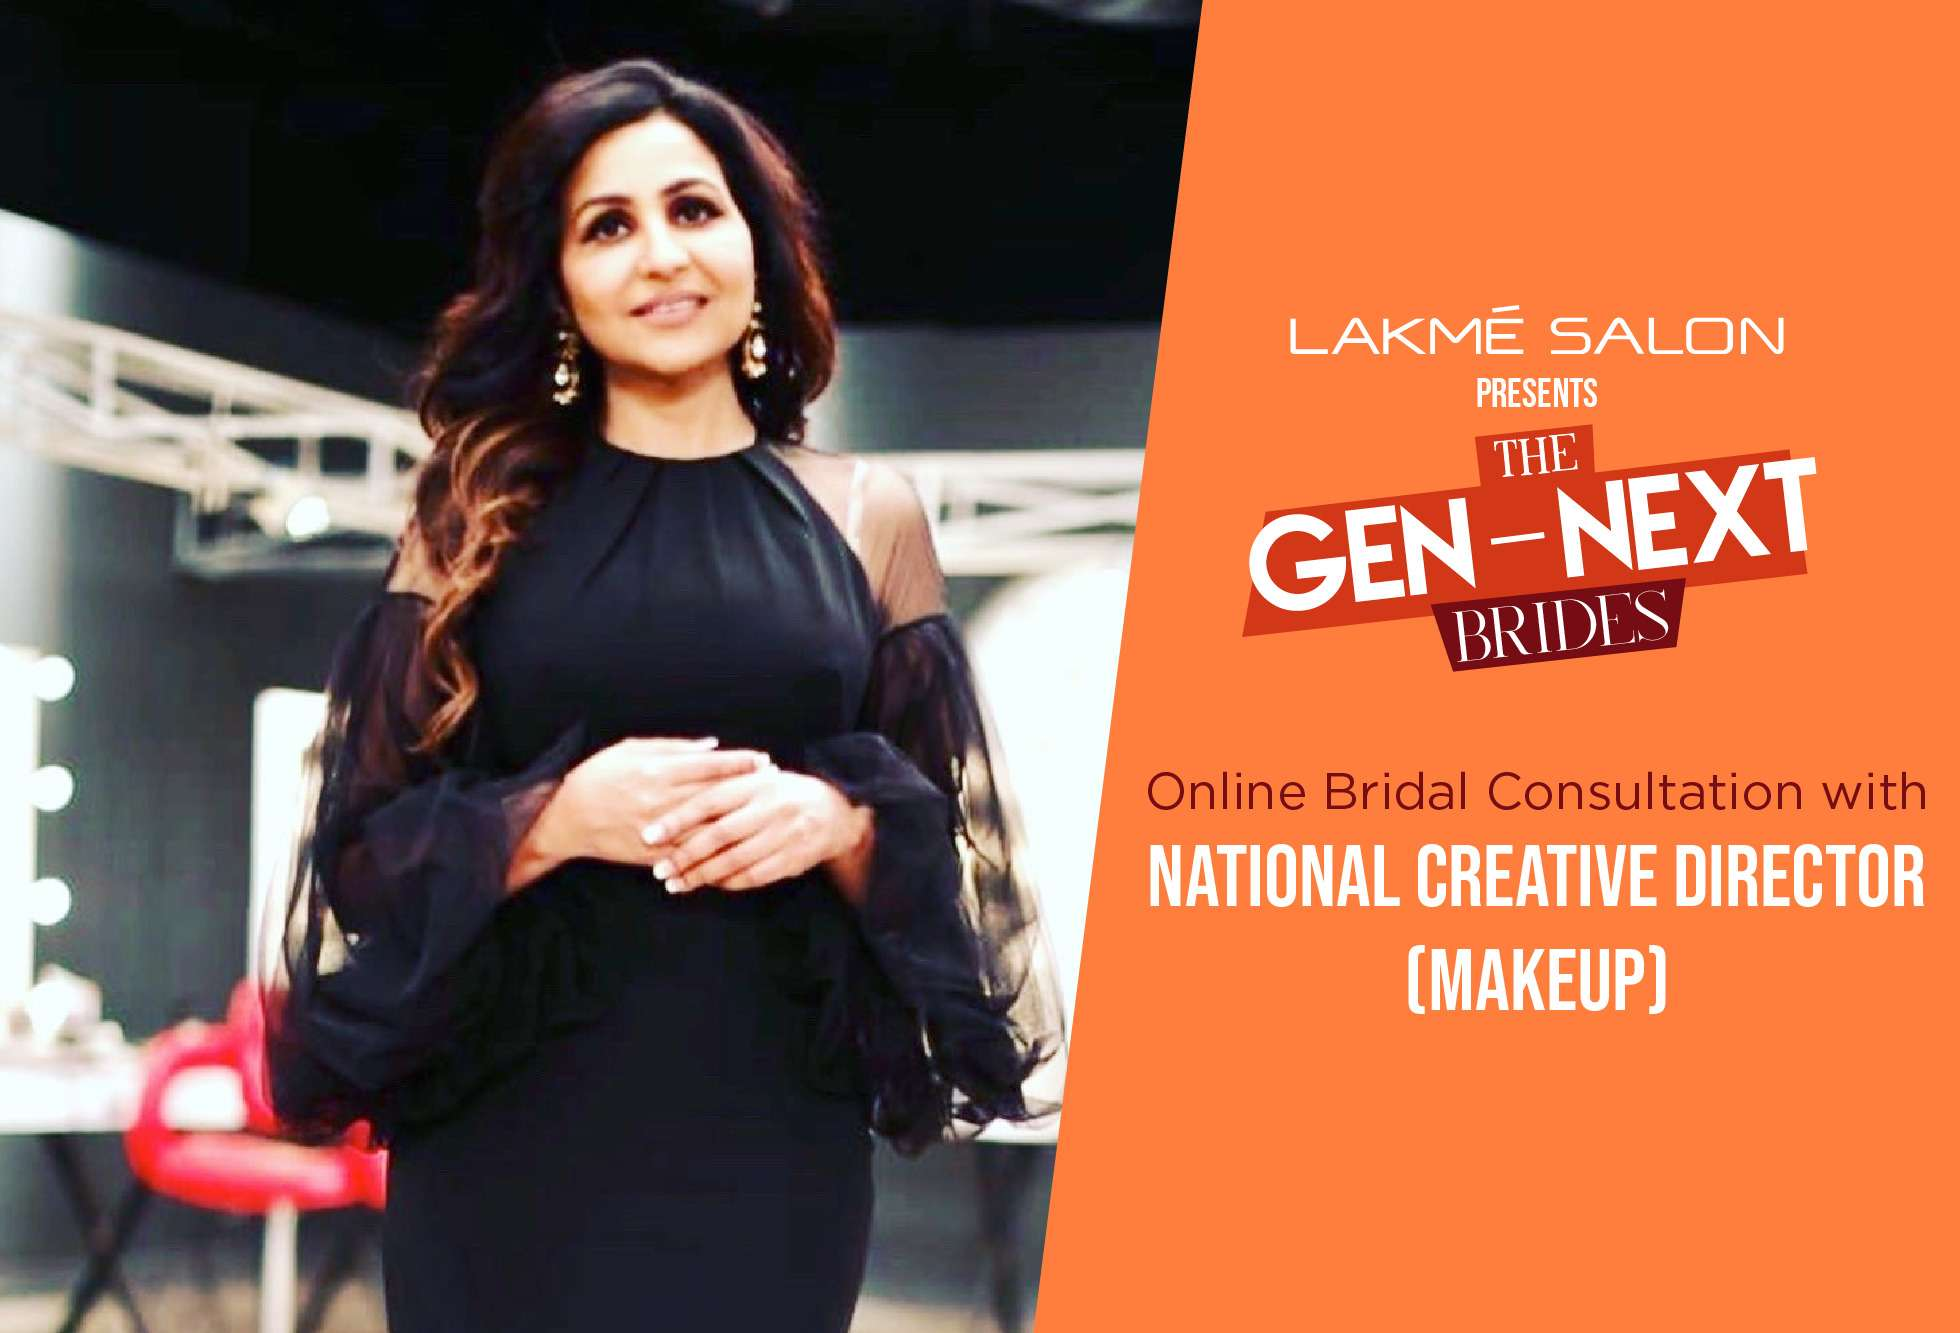 Lakme Salon - Book an online bridal consultation with our National Creative Director